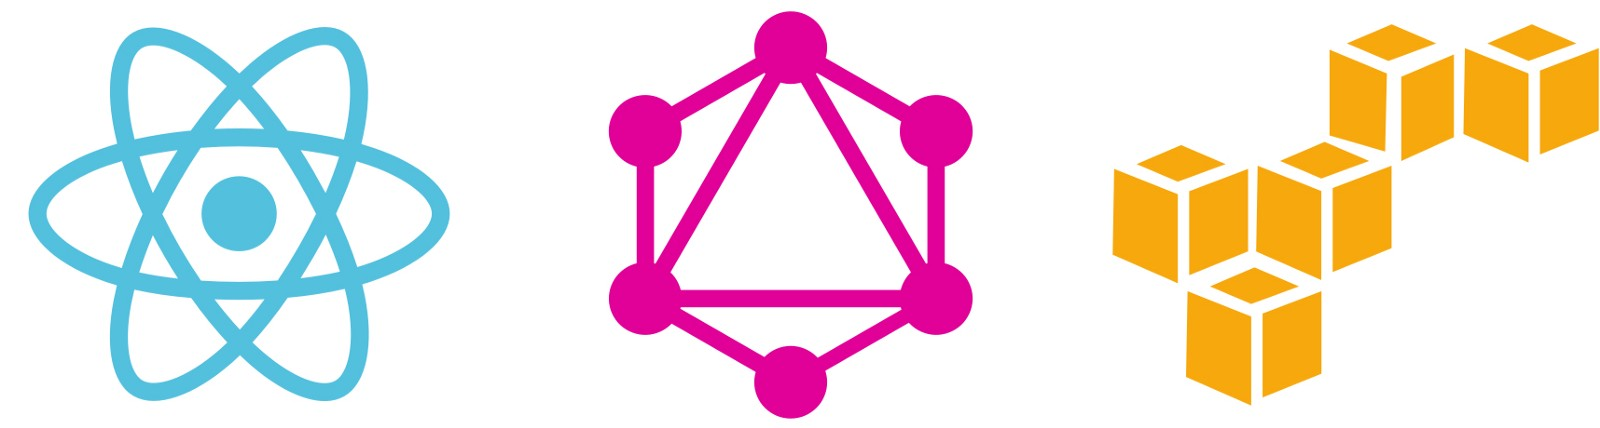 /how-to-build-a-react-graphql-static-site-served-from-aws-cloudfront-a2c4b7826a79 feature image